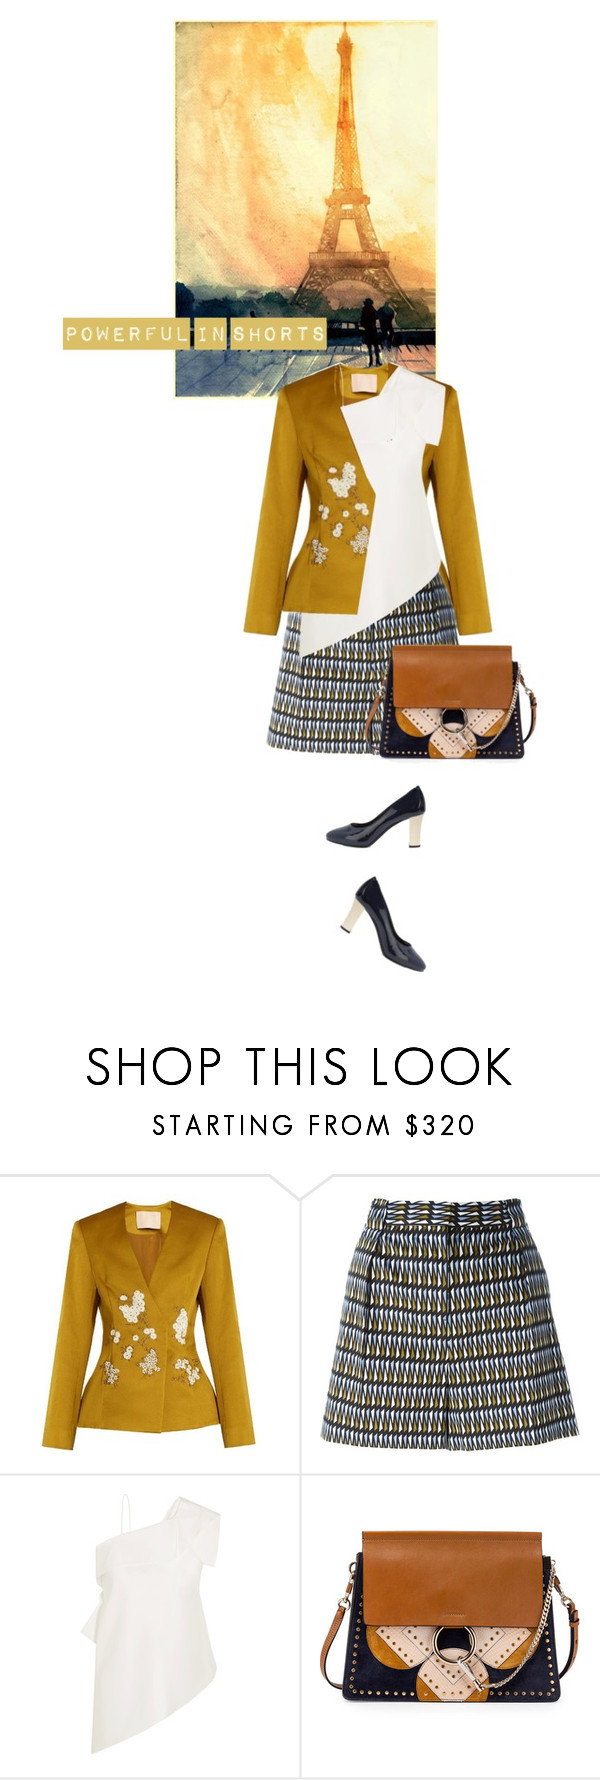 """Summer Power Look"" by noconfessions ❤ liked on Polyvore featuring Brock Collection, Paul Smith, Roland Mouret, Chloé and Lanvin"